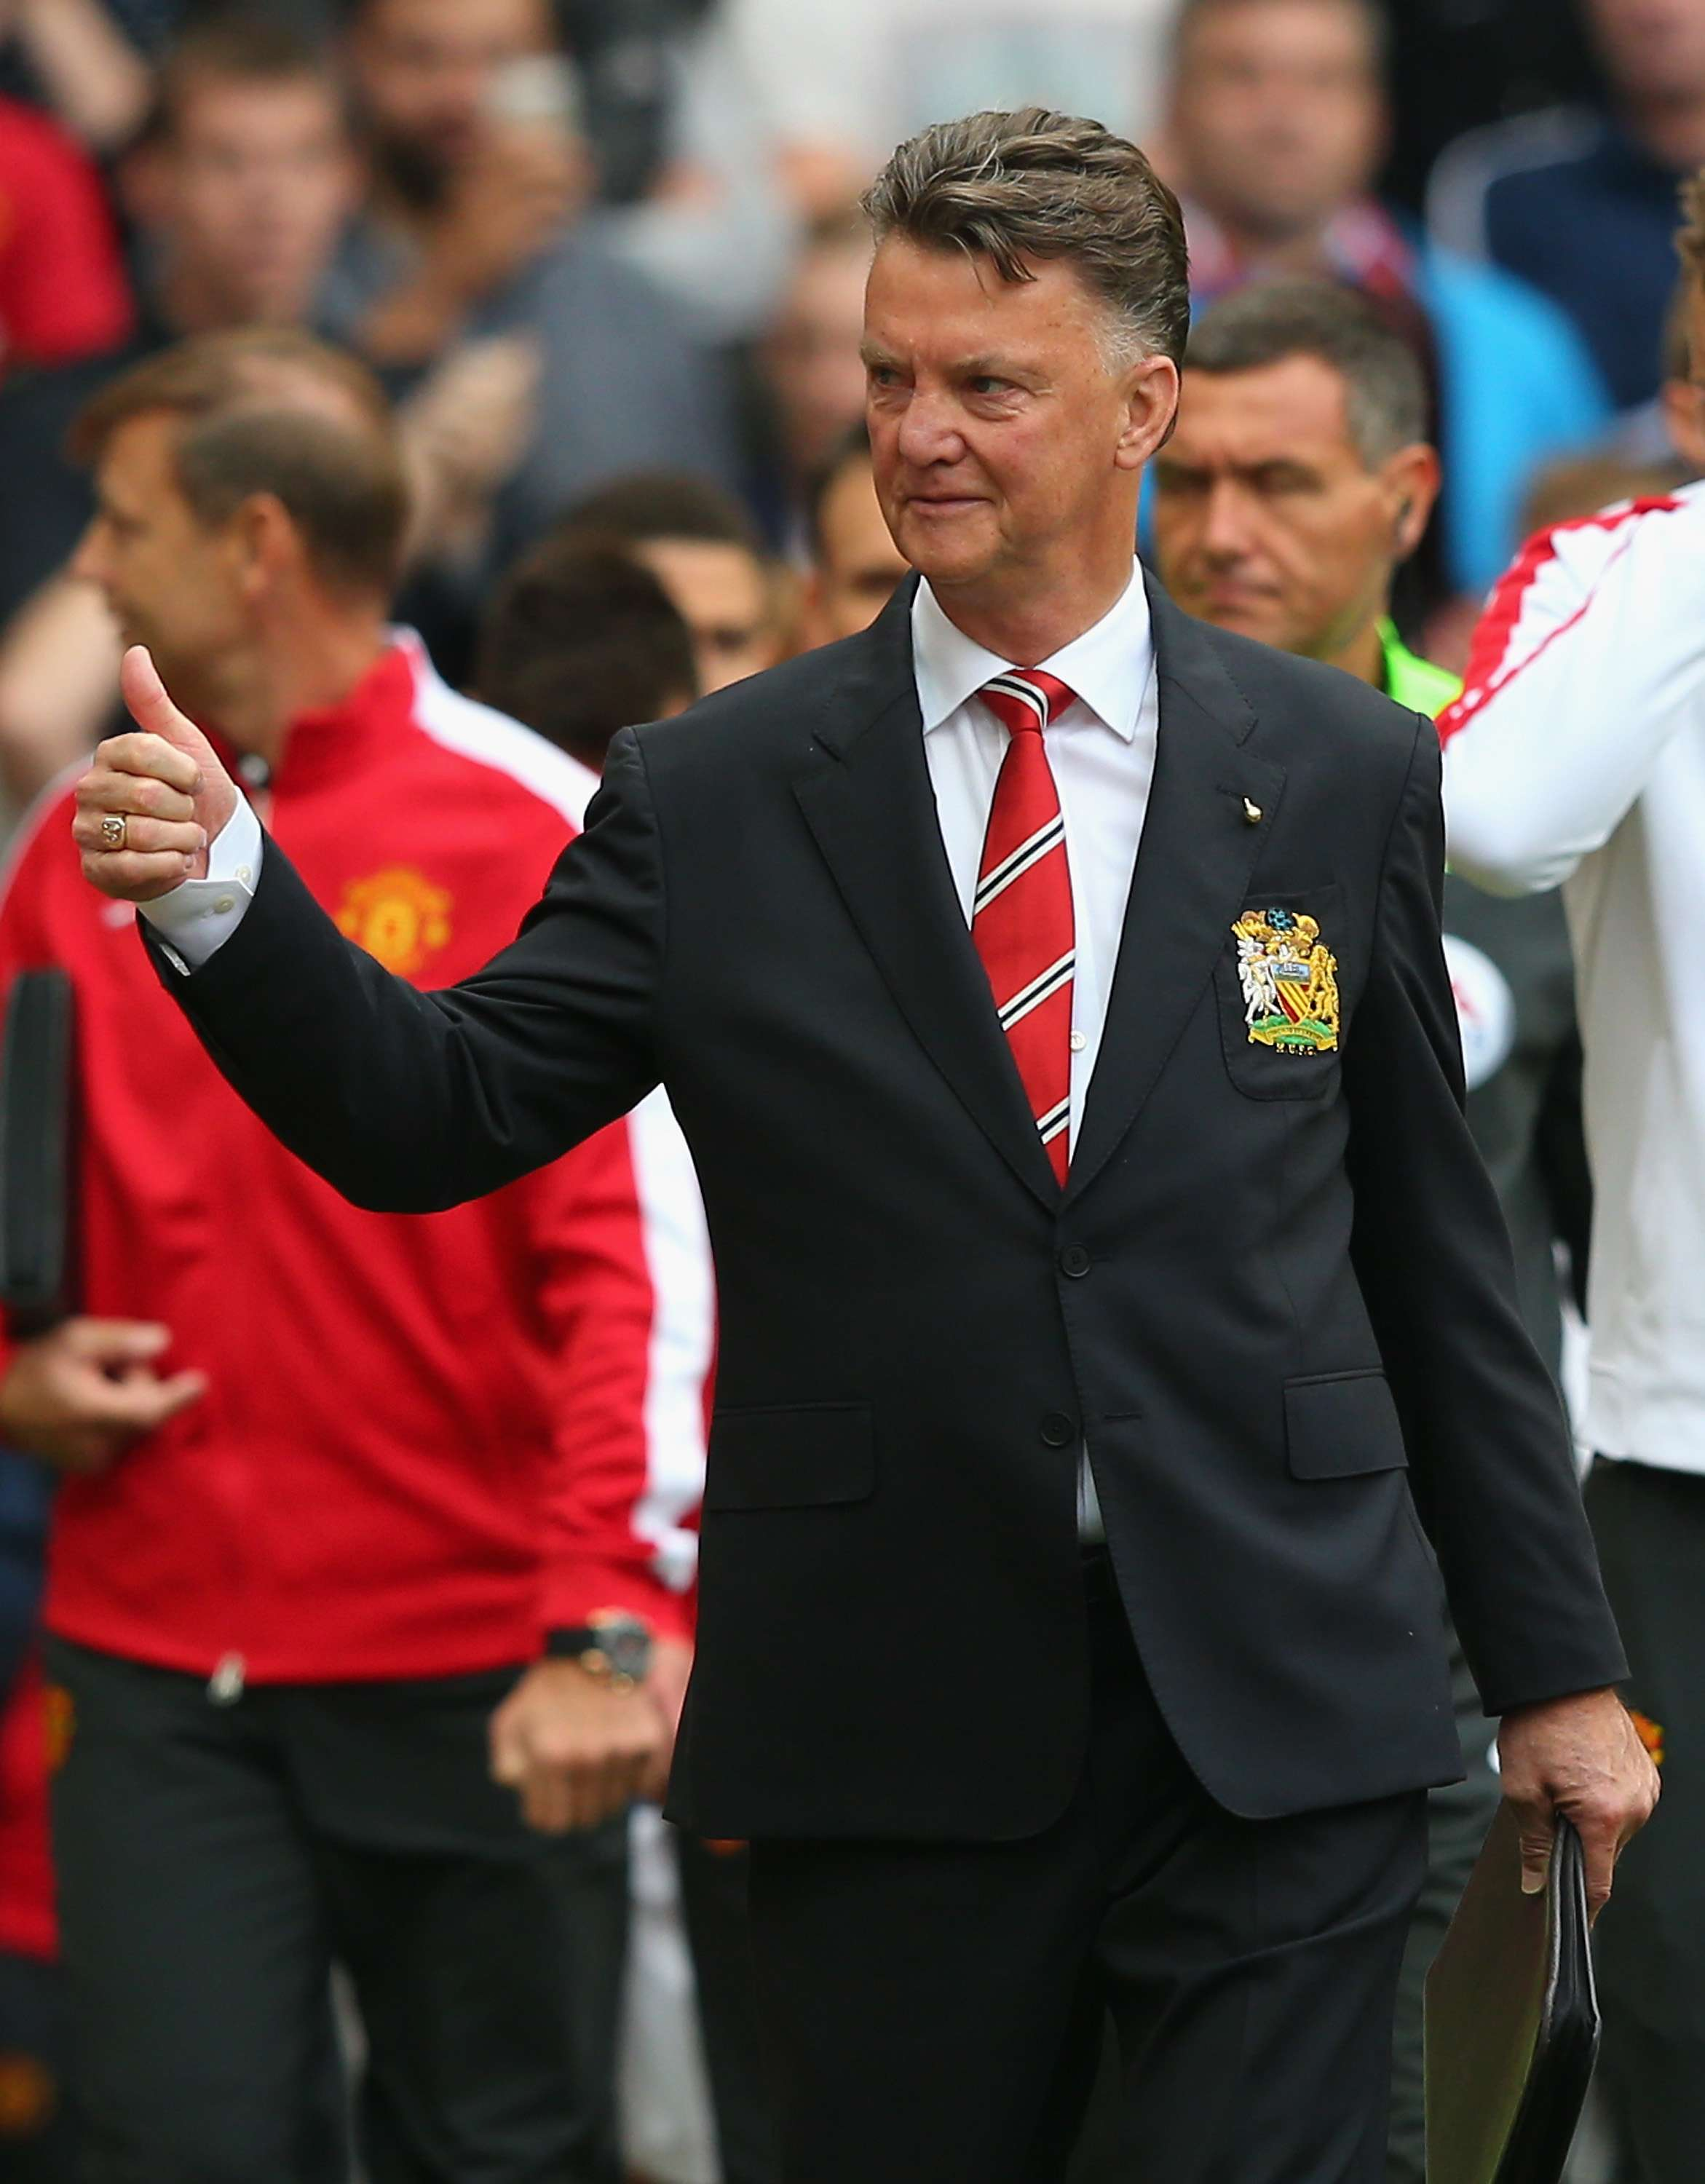 Louis van Gaal, director técnico del Manchester United. Foto: Getty Images